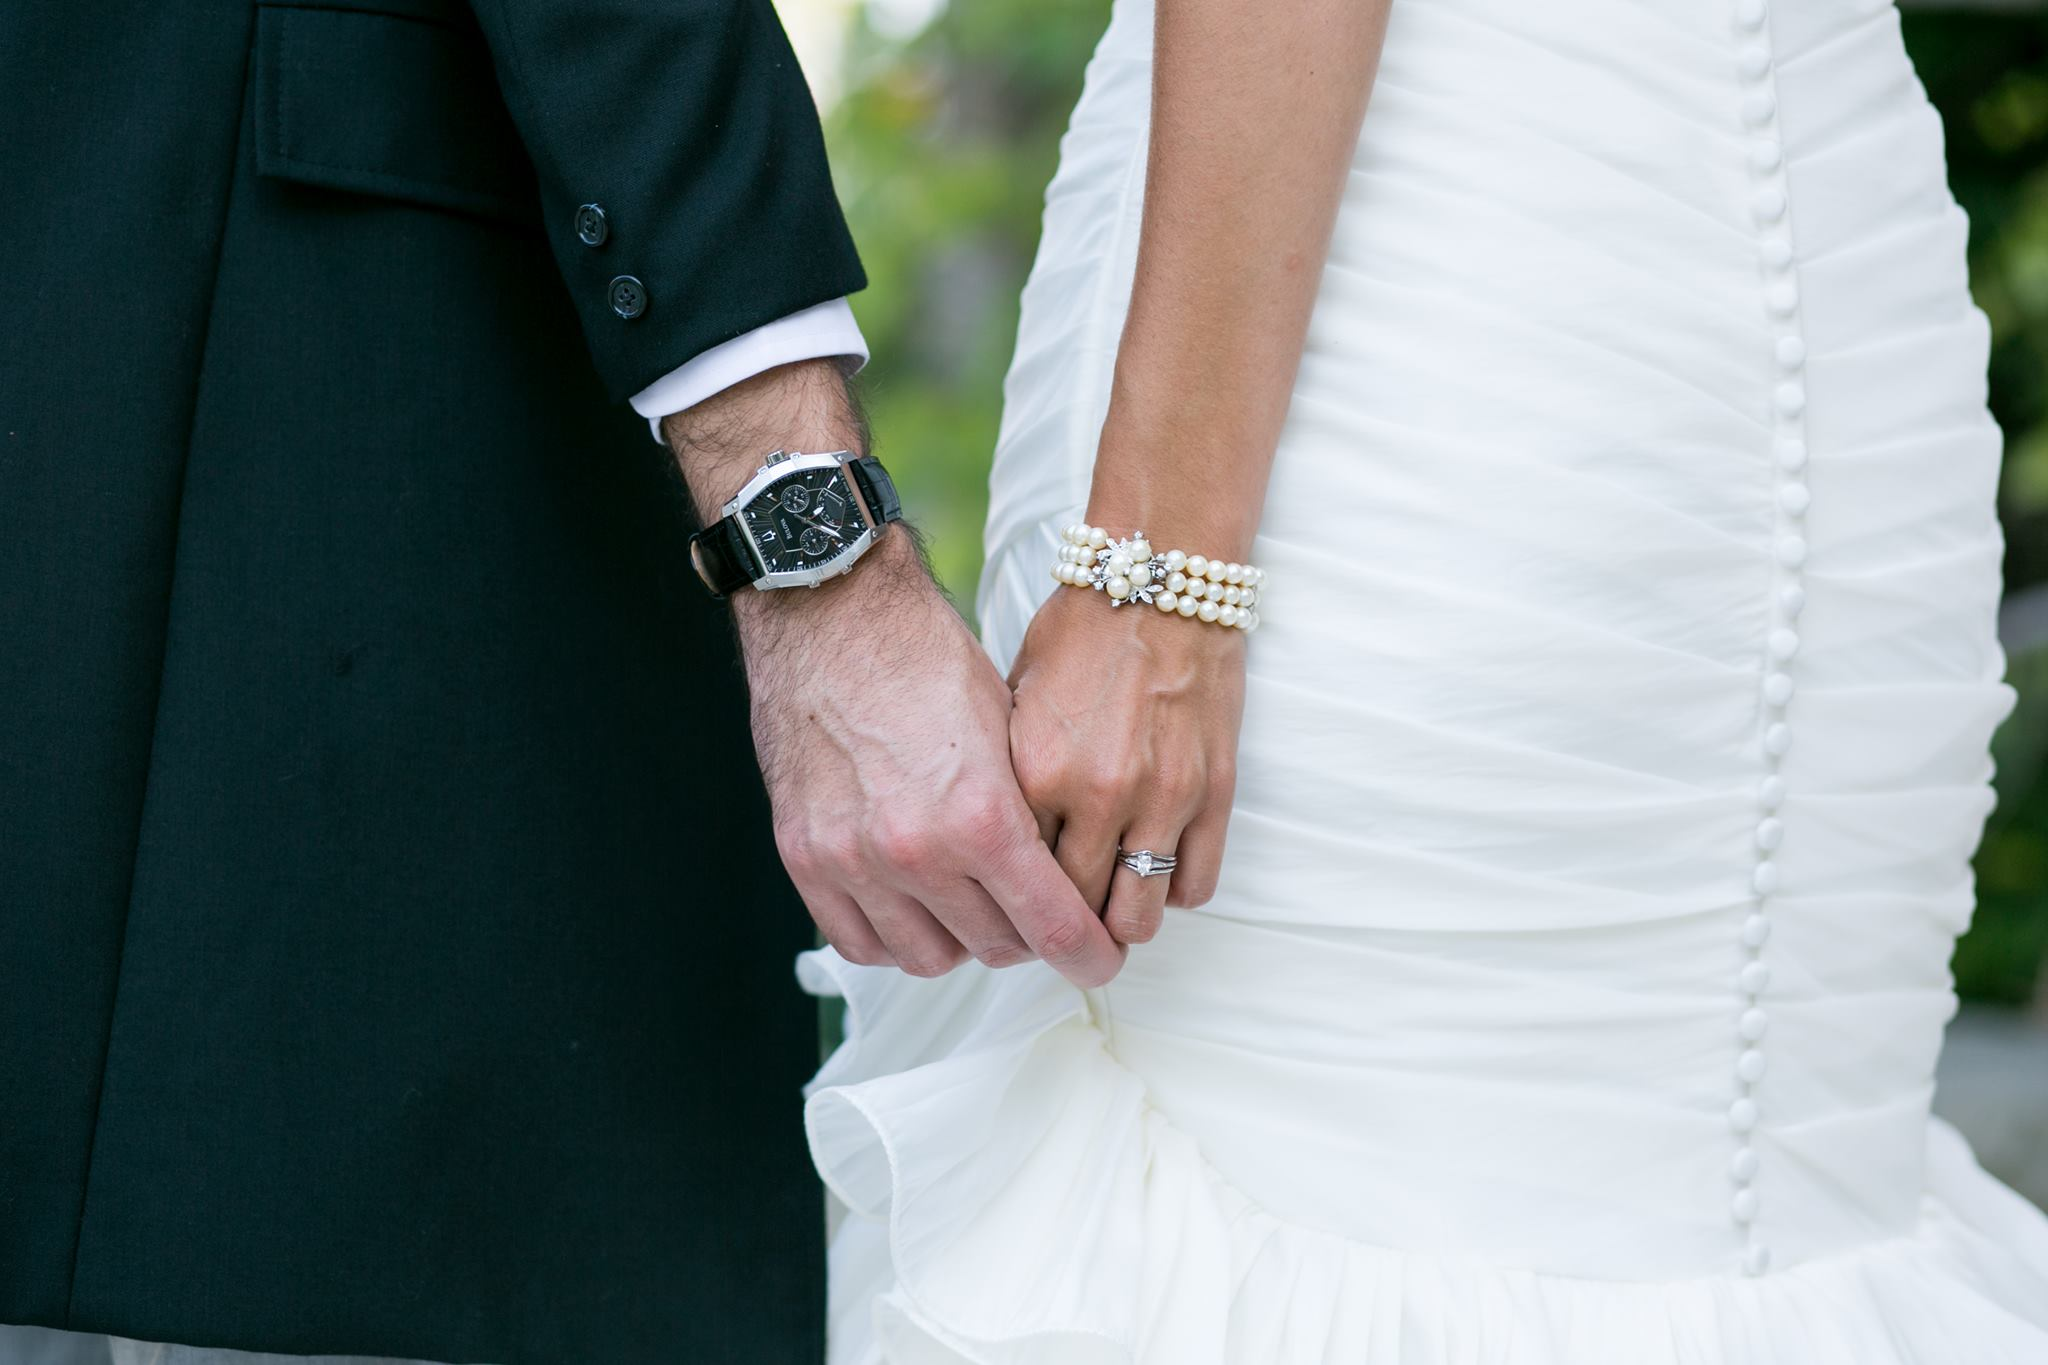 watch-bracelet-bride-groom-gift-wedding